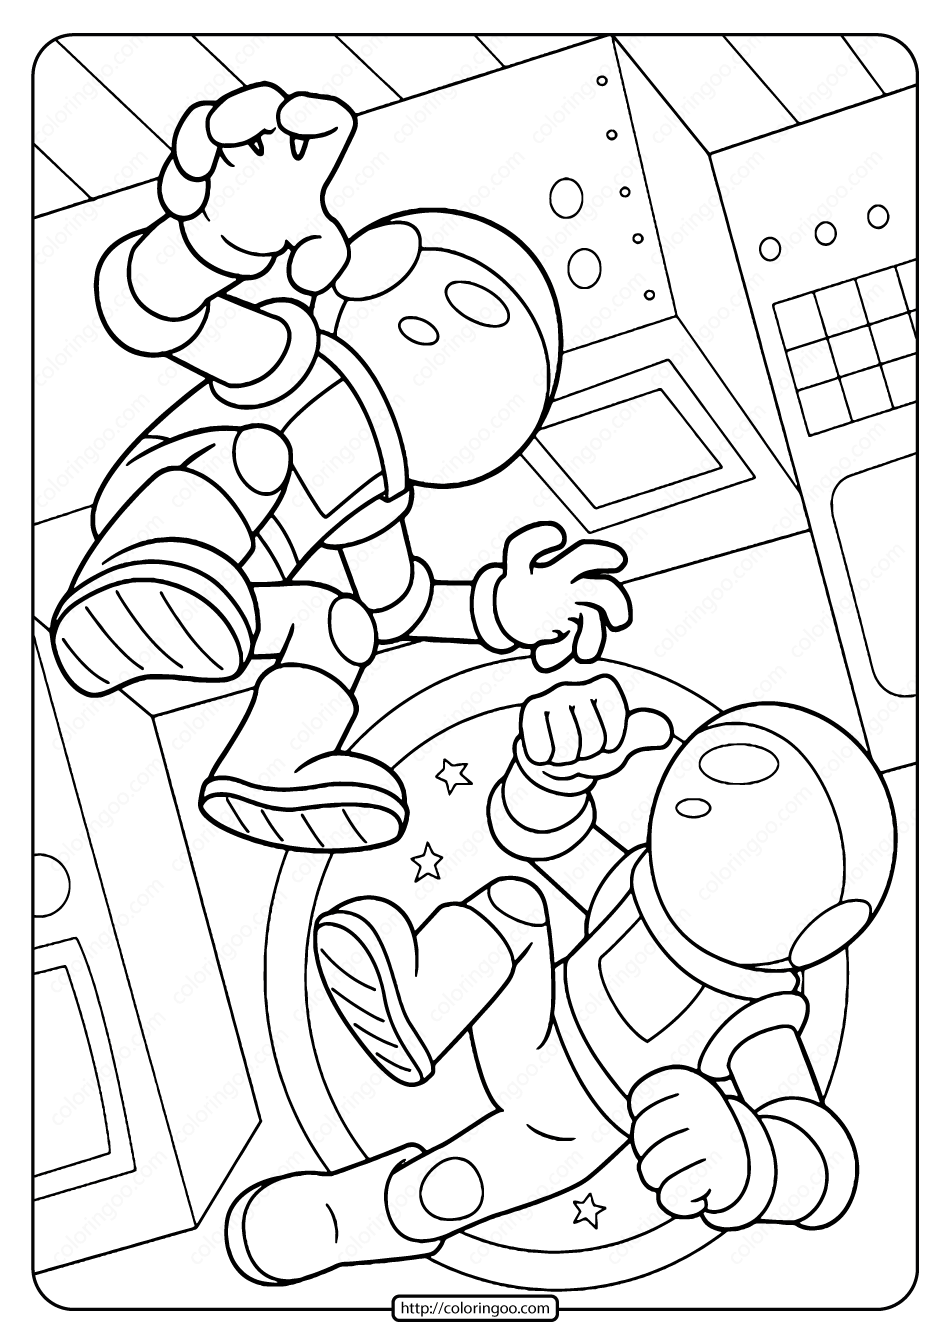 astronomy coloring pages free coloring pages printable pictures to color kids pages astronomy coloring